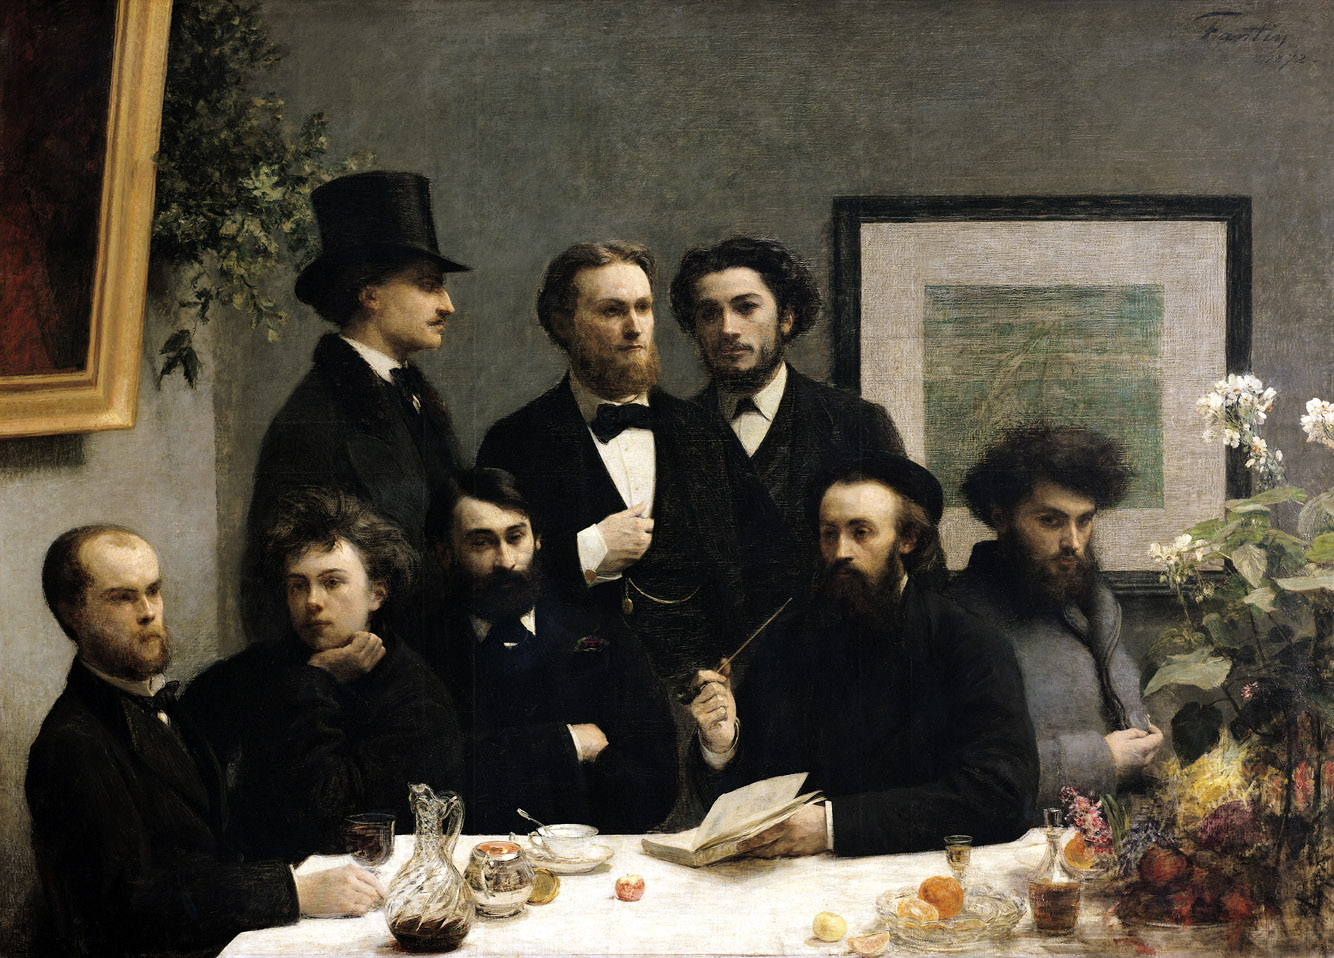 By the Table, by Henri Fantin-Latour, 1872.